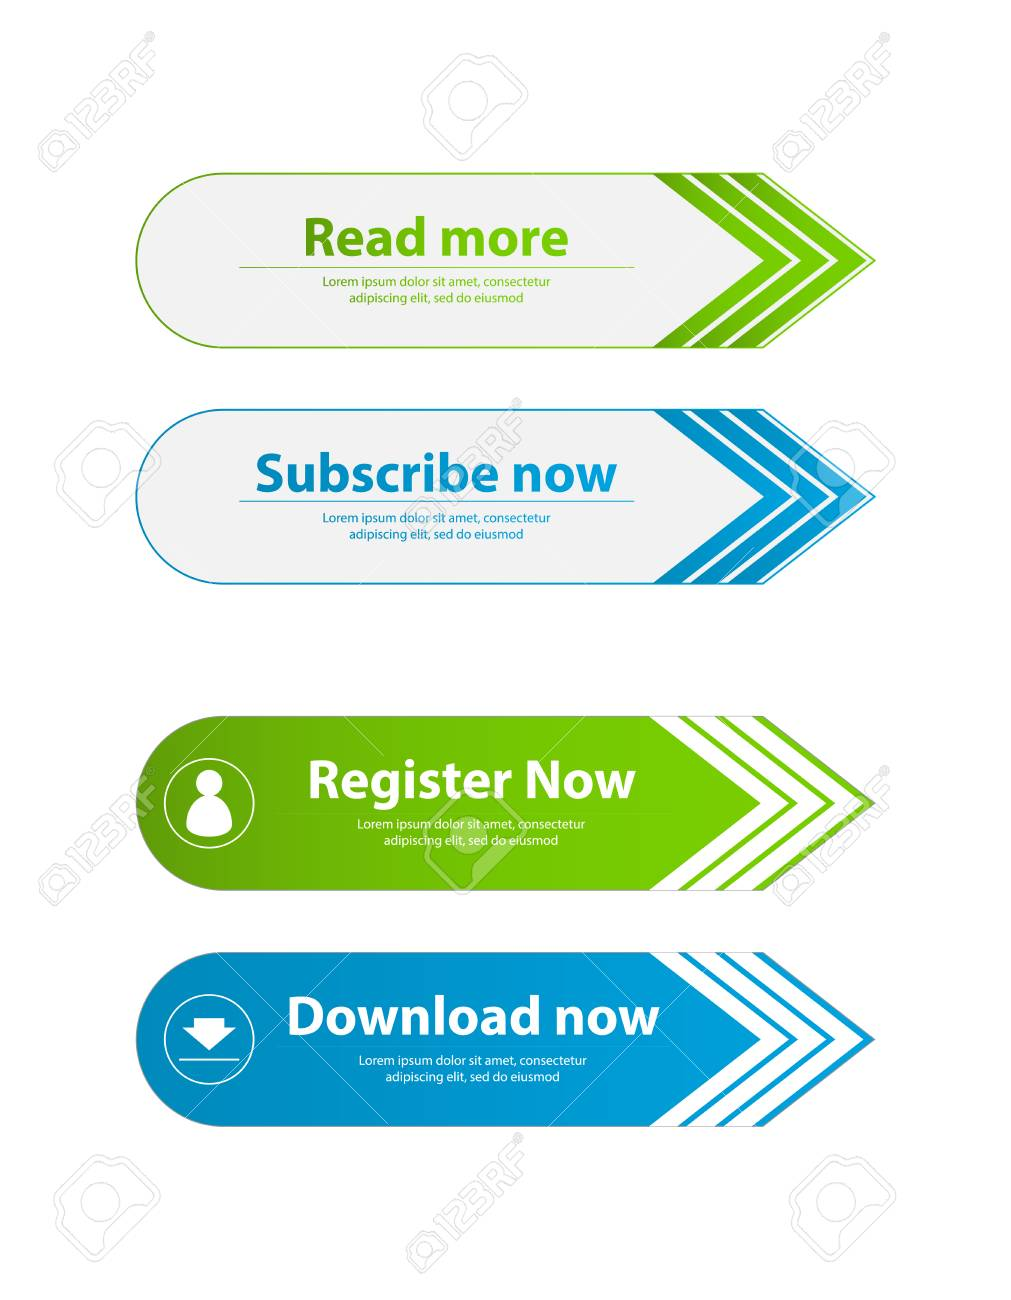 special website buttons,register,download,join advertisement